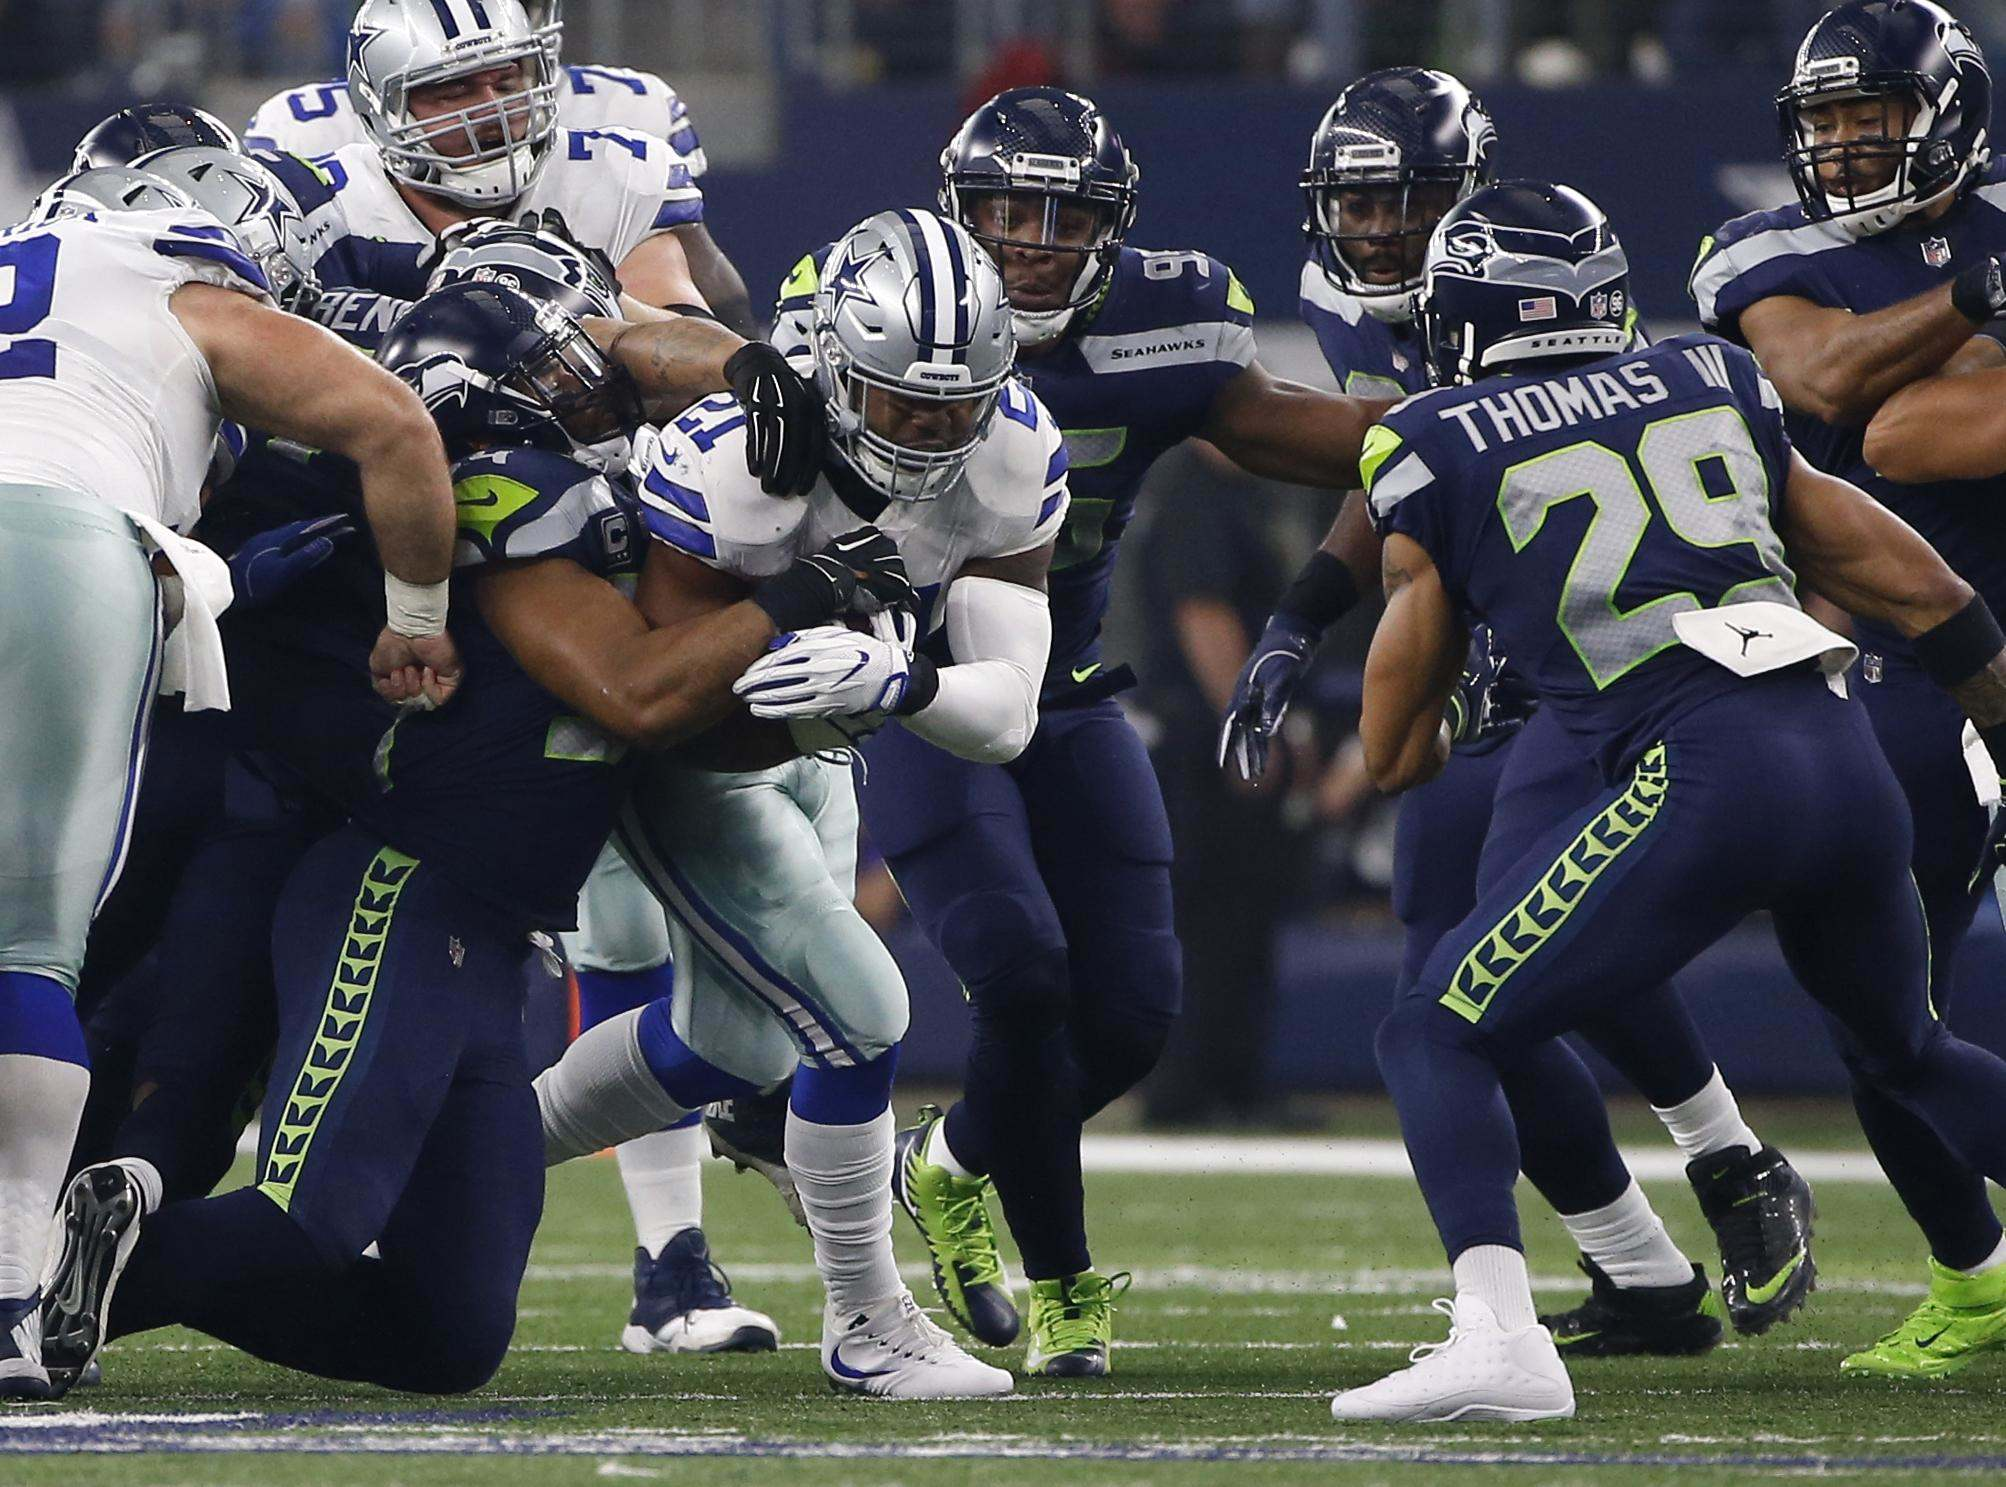 Jwilliams_game-notes_dallas-cowboys-path-to-victory-over-the-seattle-seahawks